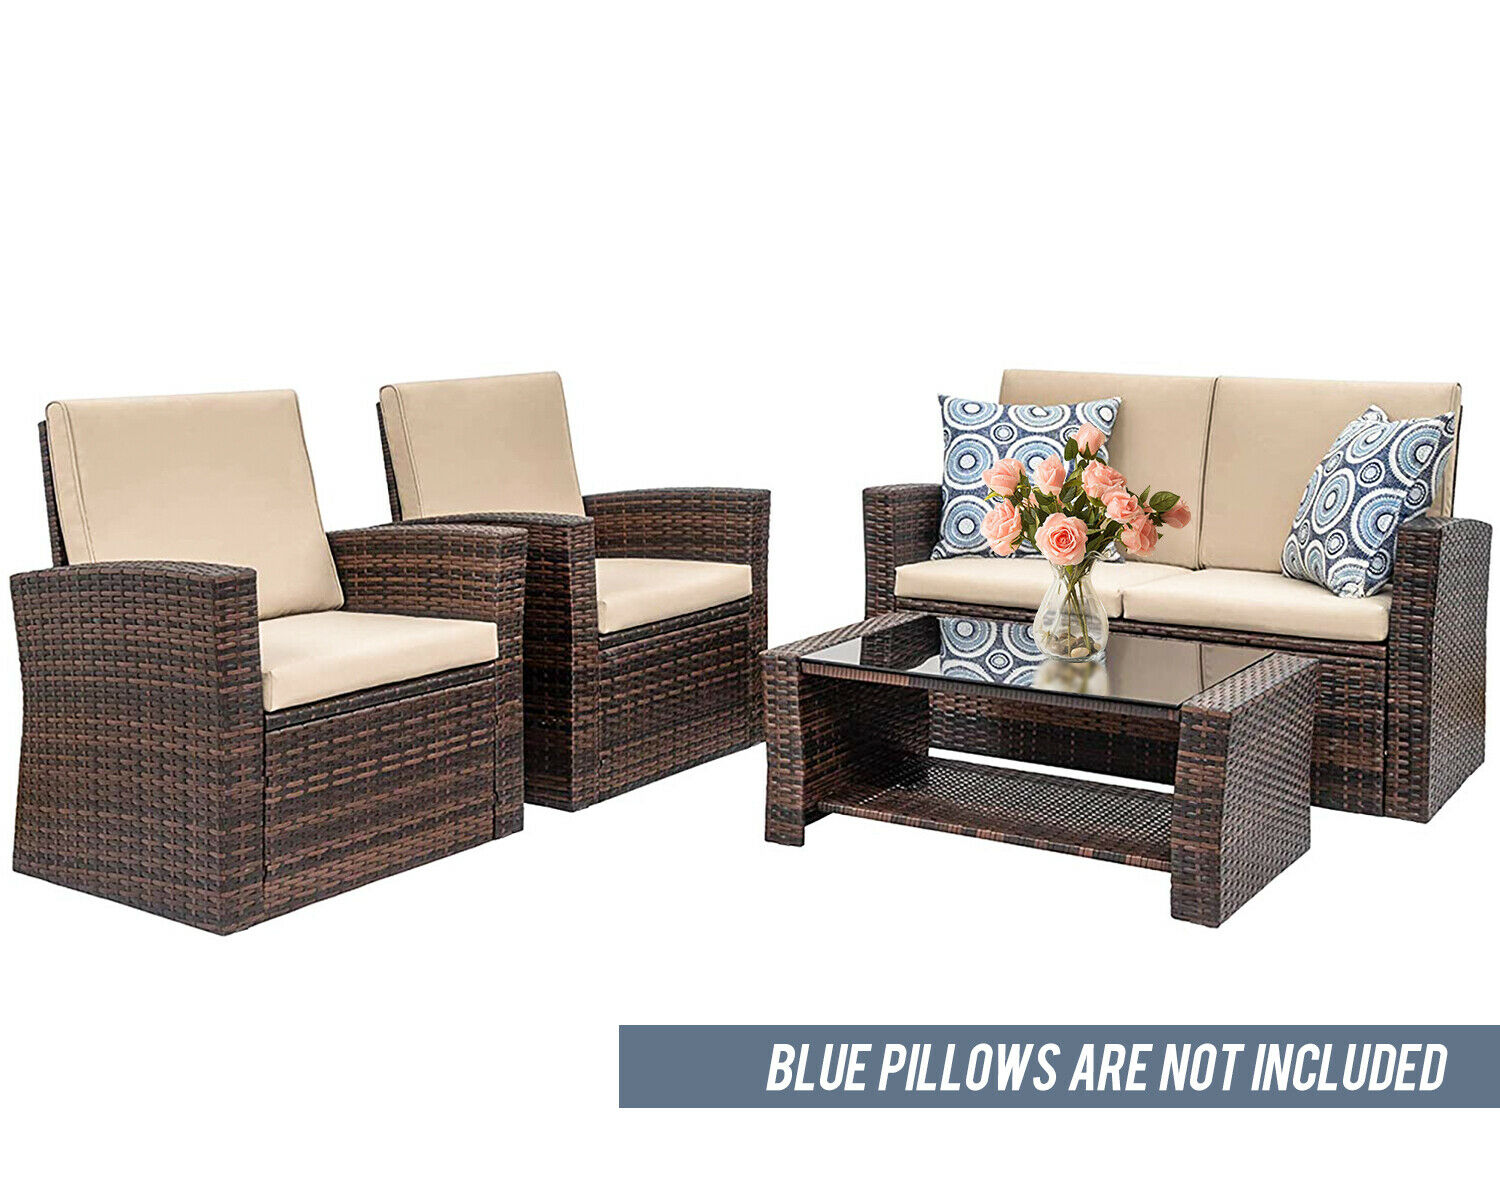 4 Pieces Outdoor Patio Furniture Sets Sectional Sofa Rattan Chair Wicker Set Home & Garden